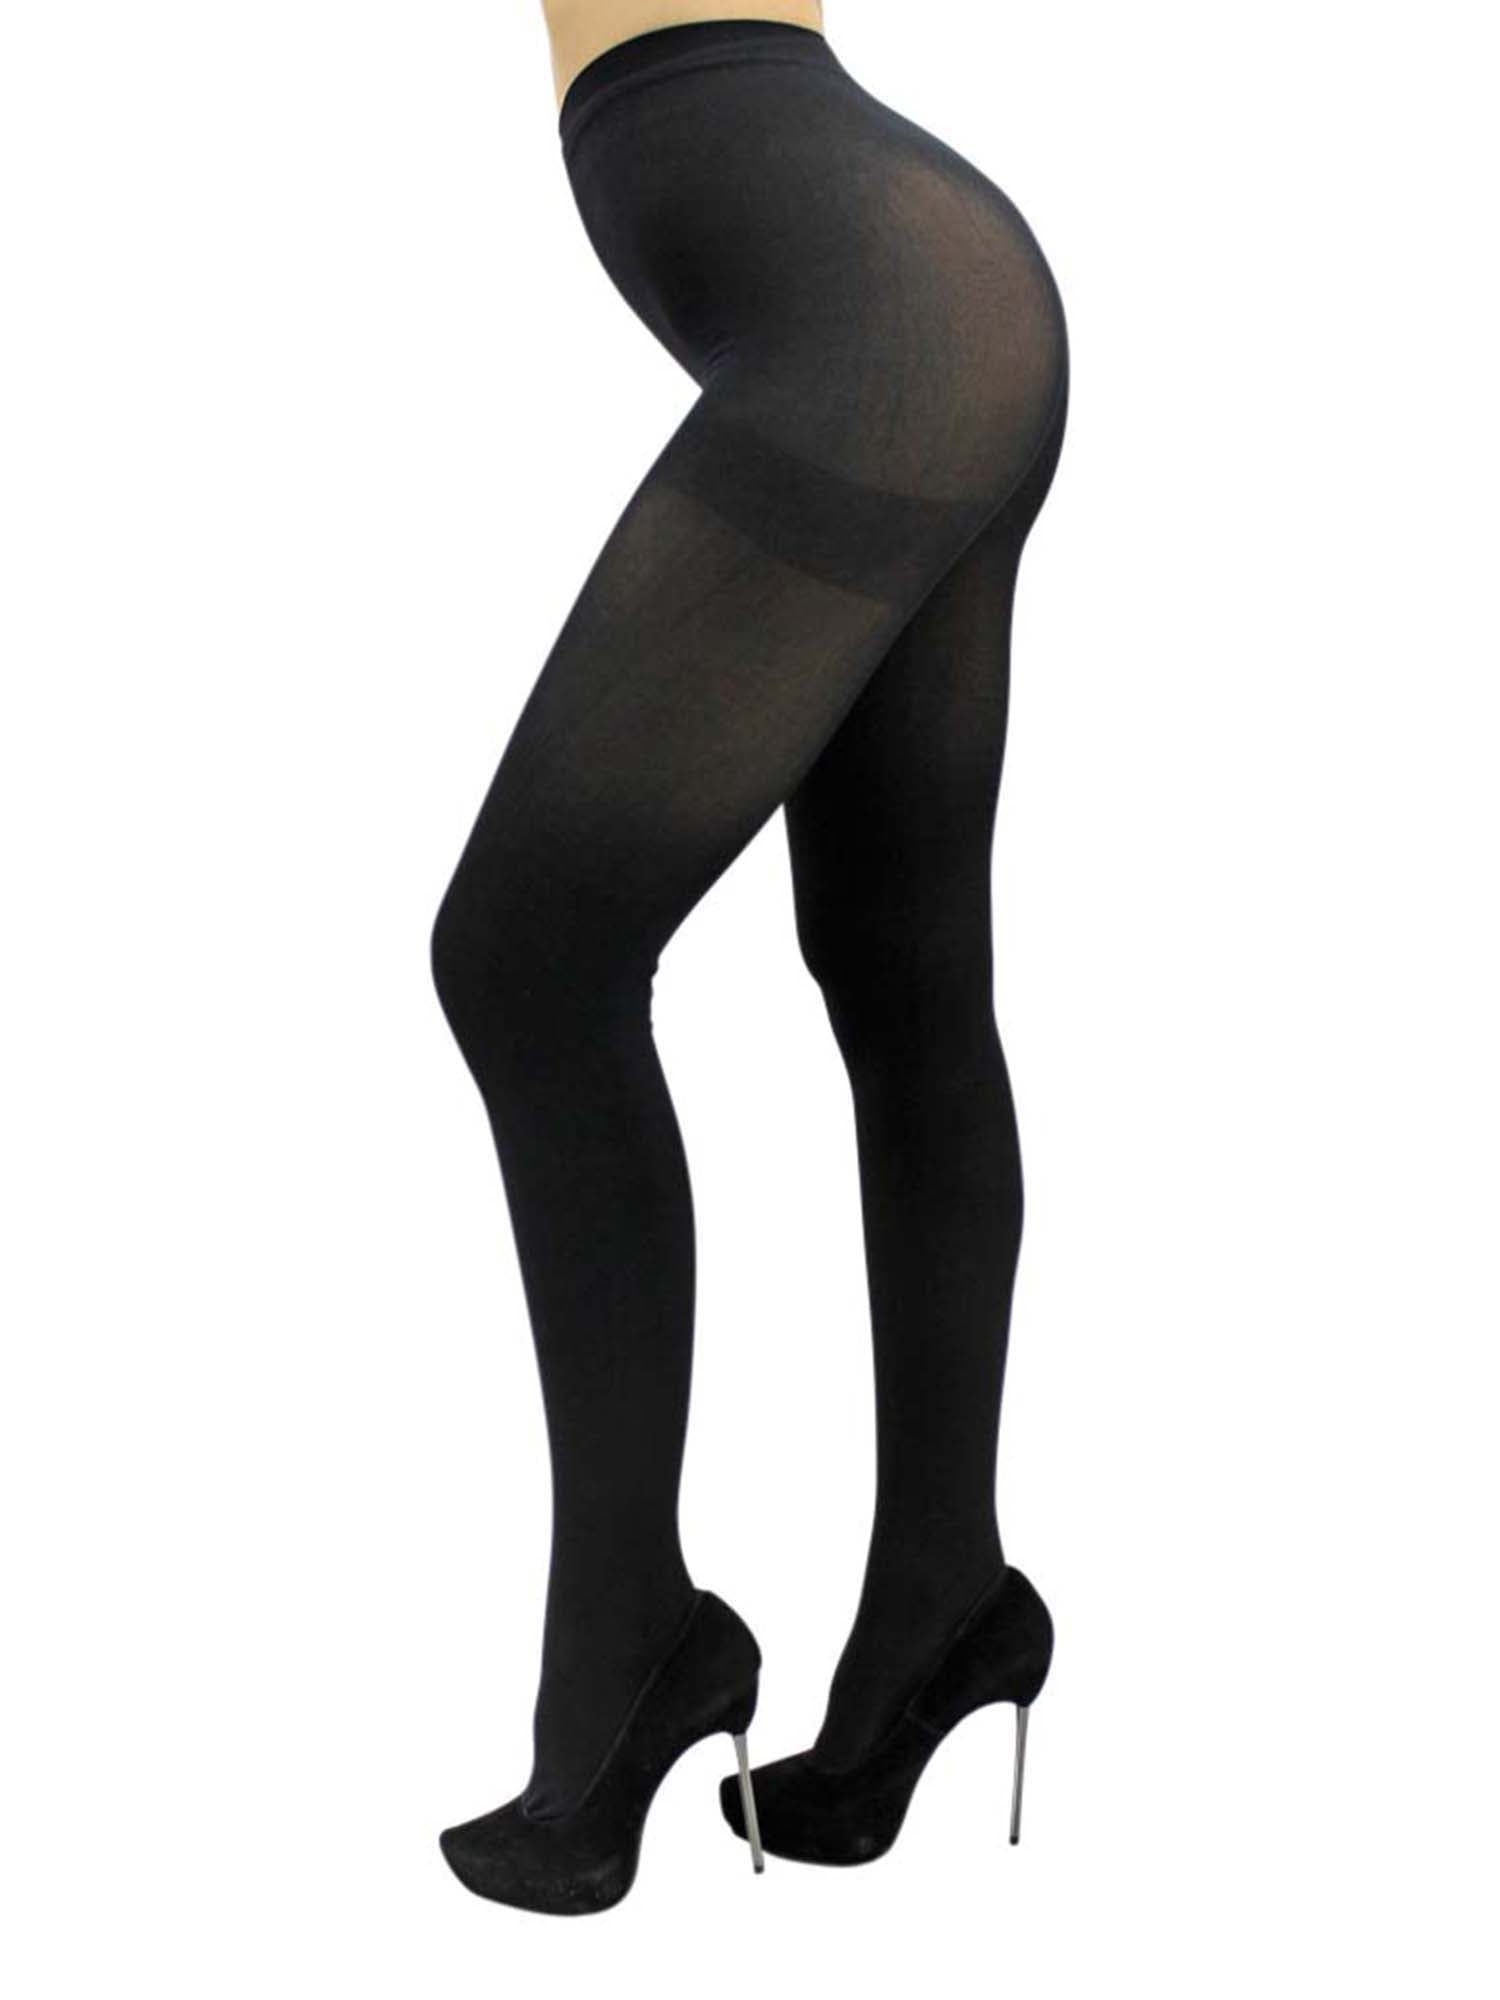 Stretchy Opaque Pantyhose Tights